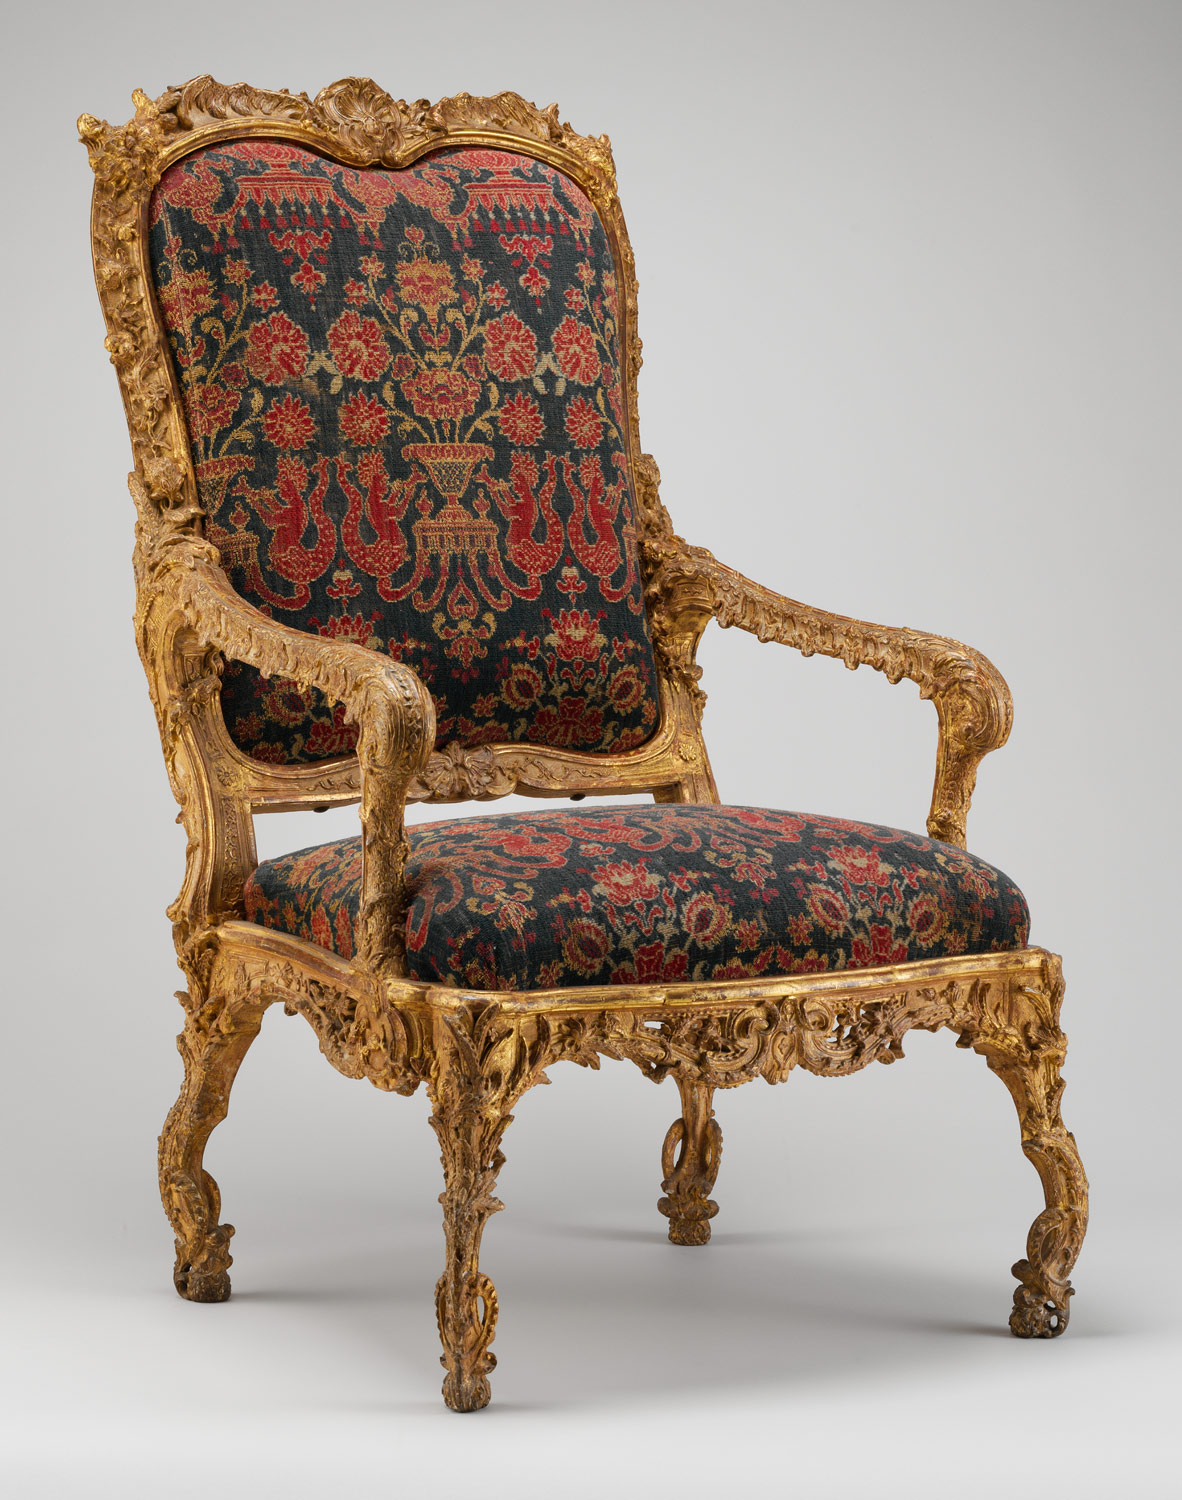 French baroque furniture - Armchair Fauteuil La Reine